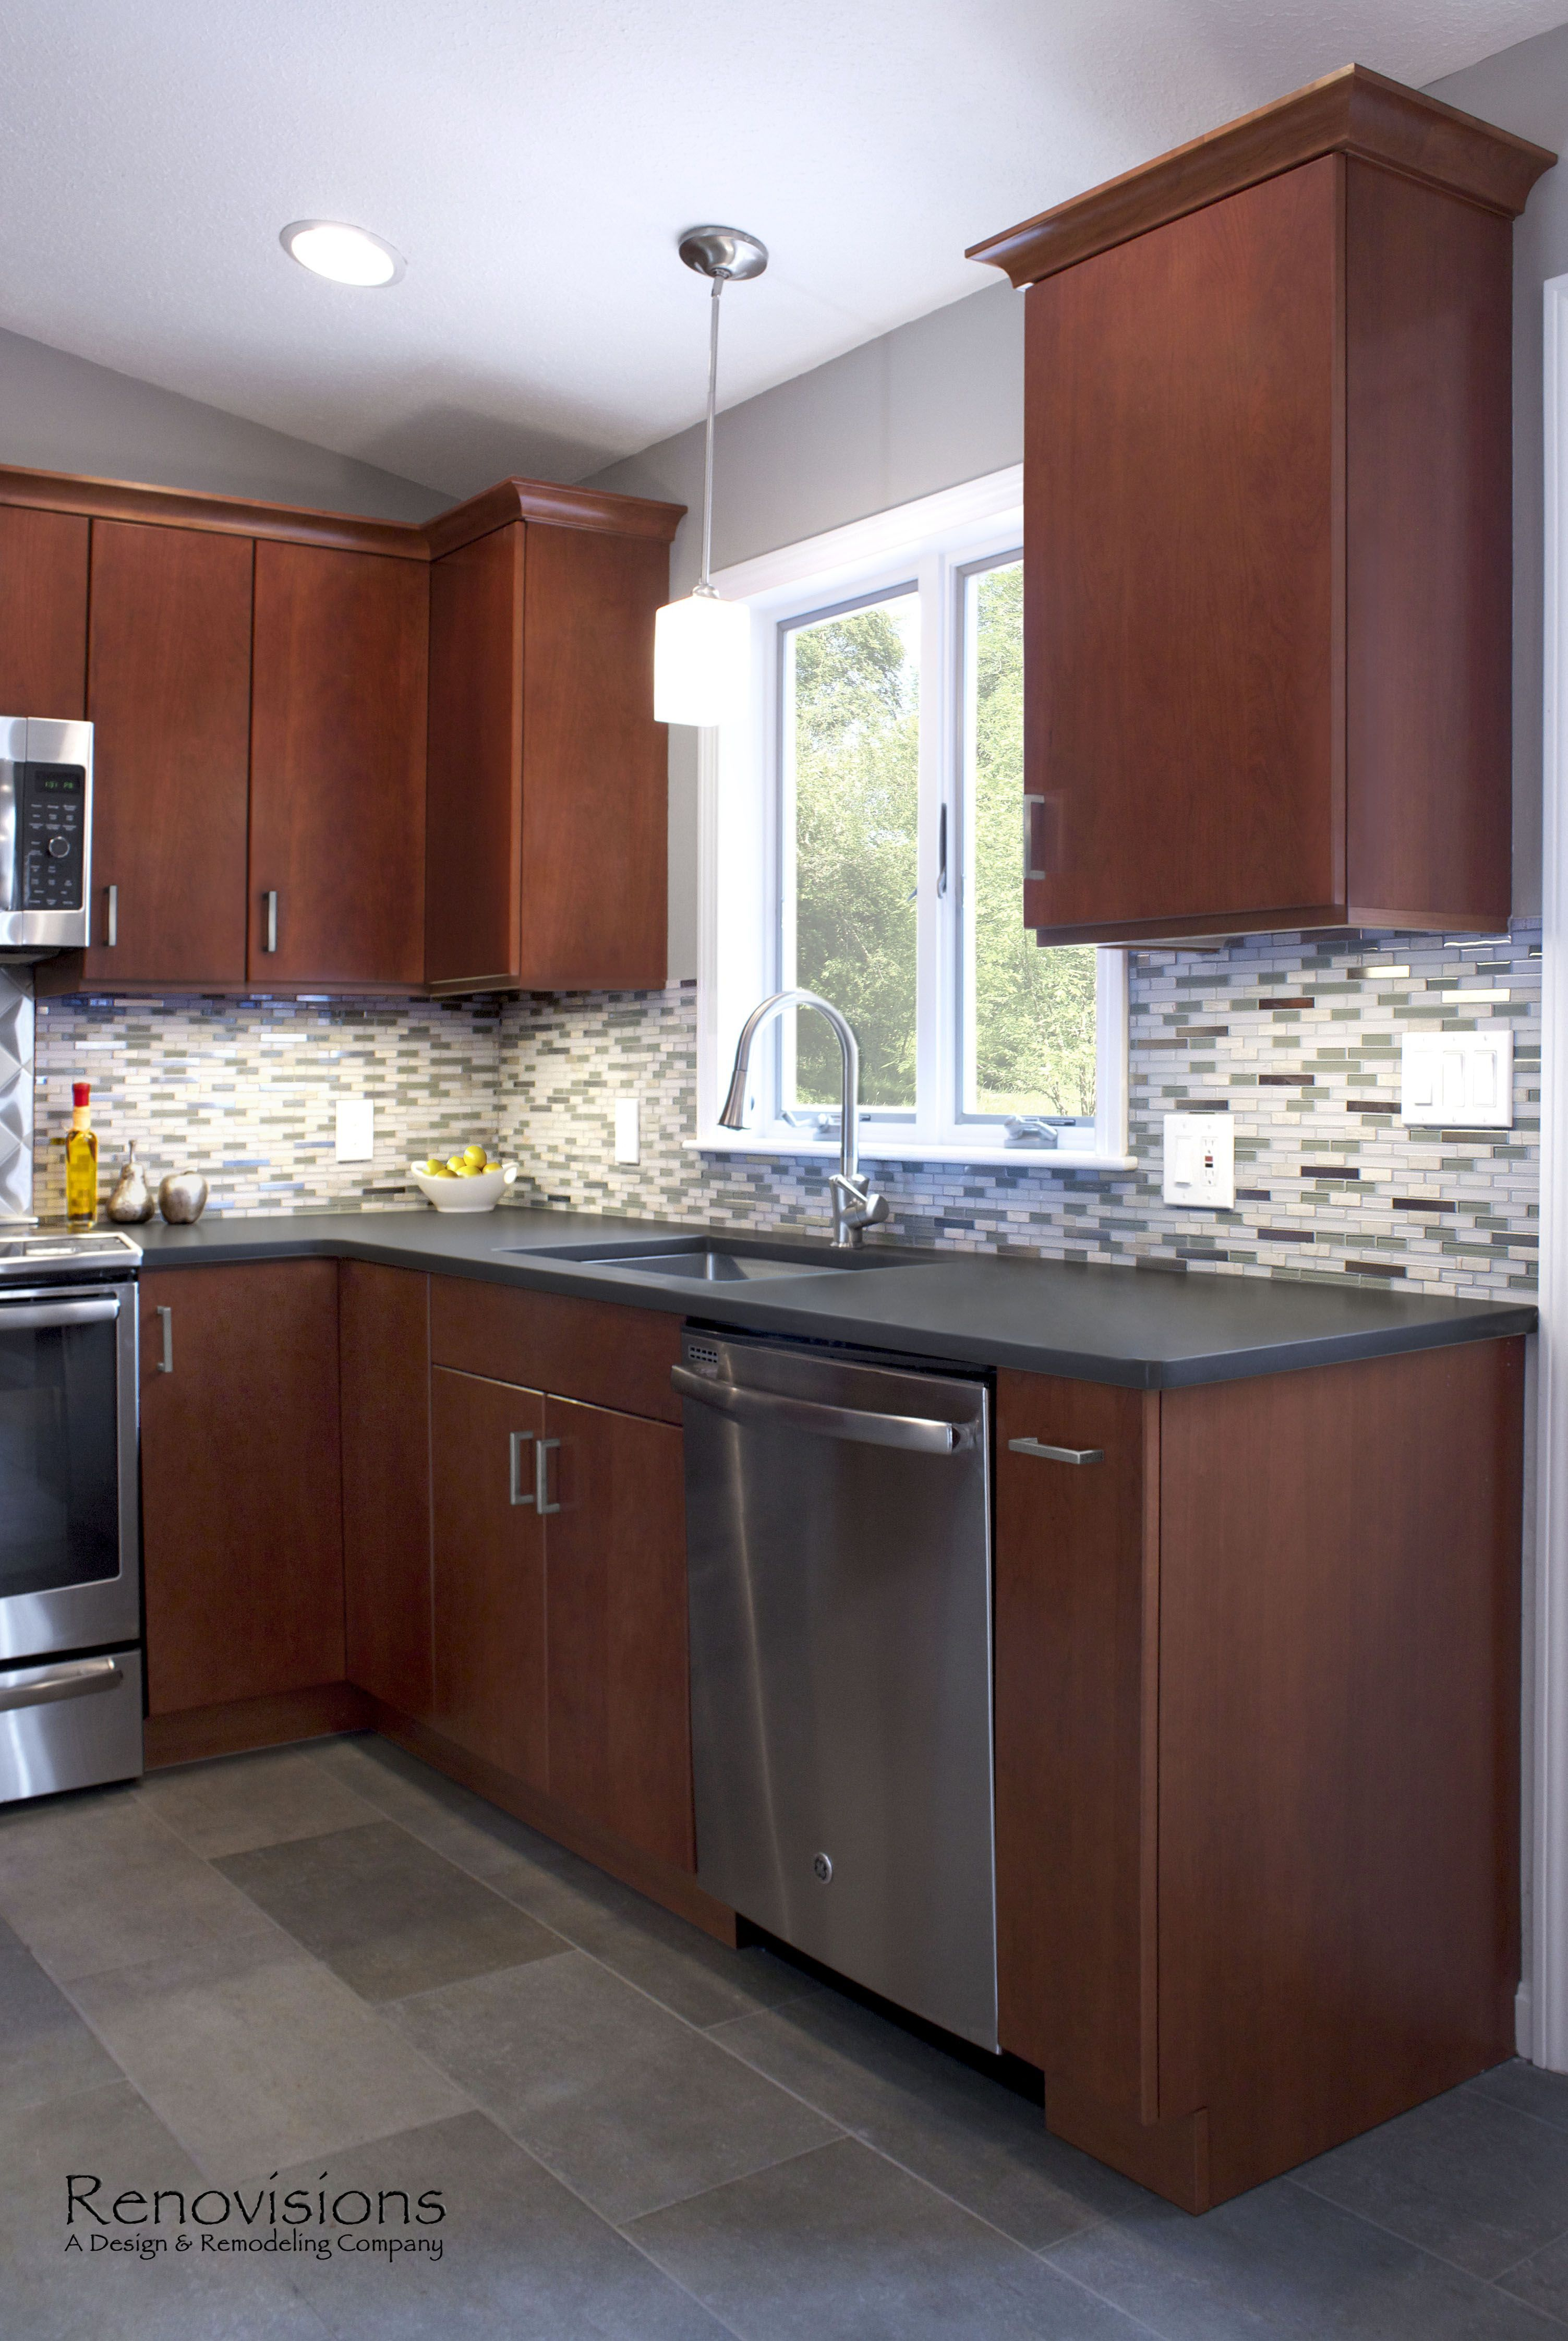 Contemporary Kitchen Remodel By Renovisions Stainless Steel Appliances Glass Mosaic Backspl Contemporary Kitchen Remodel New Kitchen Cabinets Kitchen Remodel